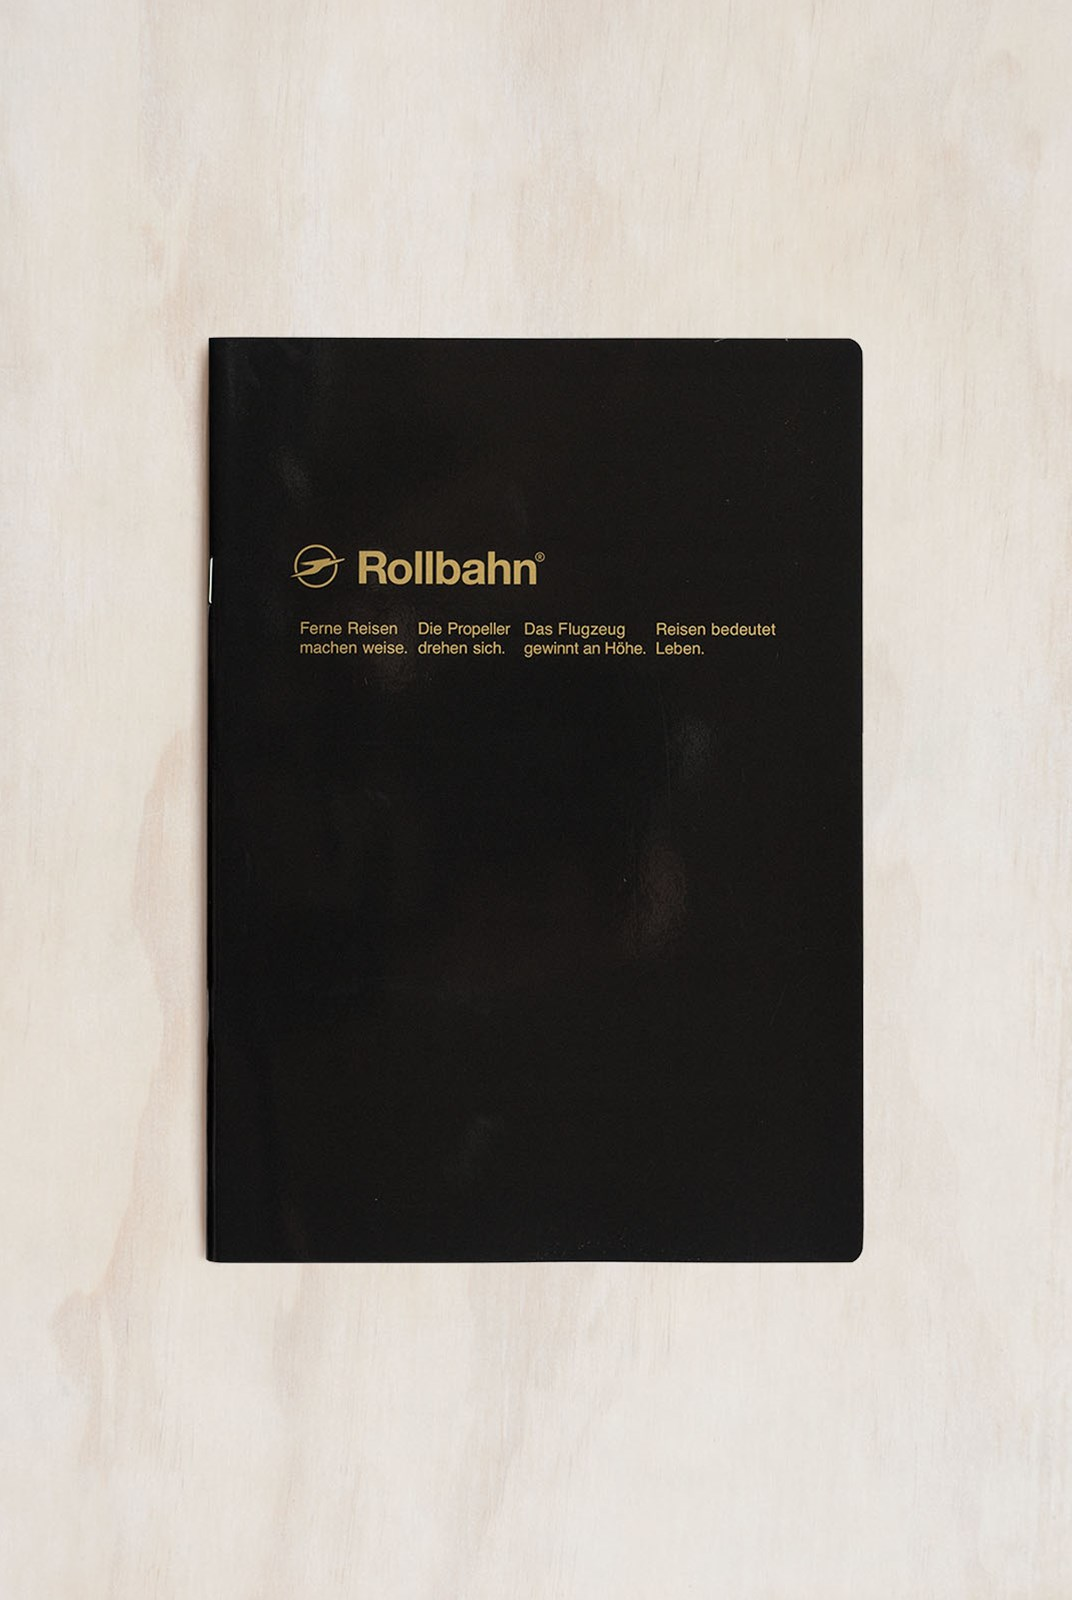 Delfonics - Rollbahn Slim Notebook - Grid - B5 - Black